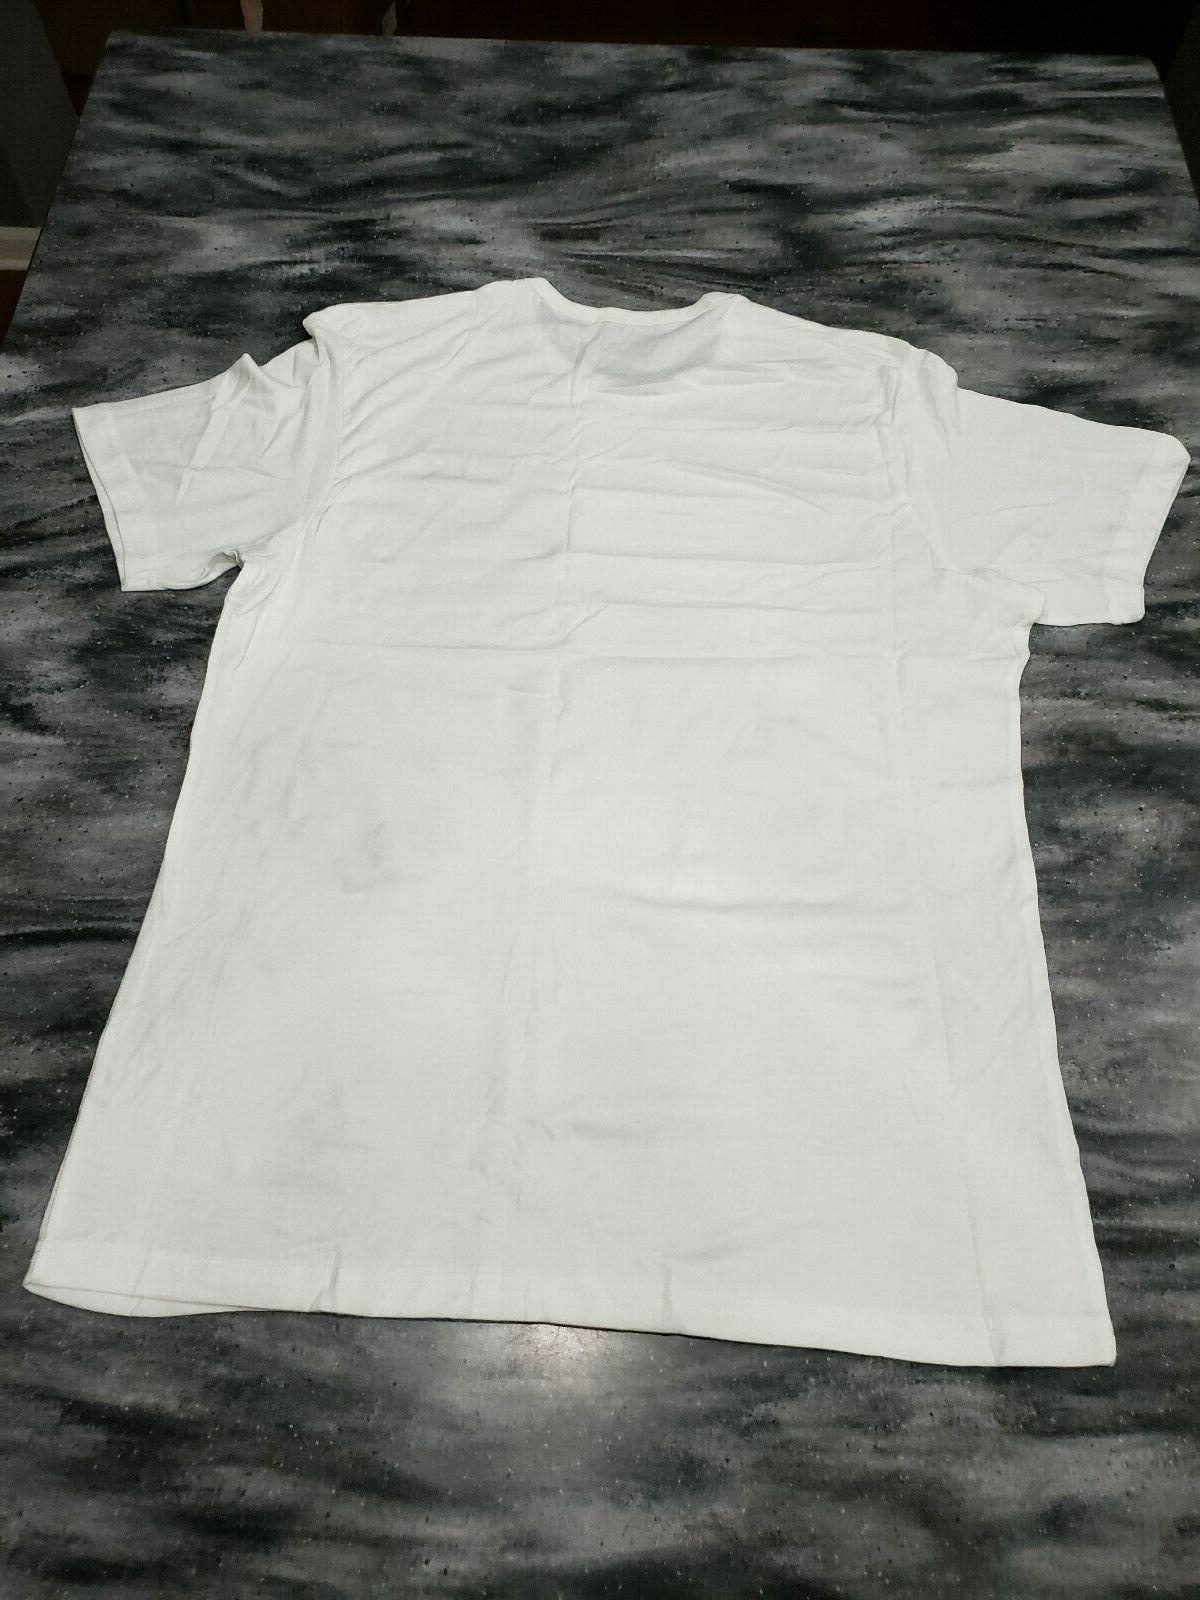 New XL Extra-Large White T-Shirt Tagless